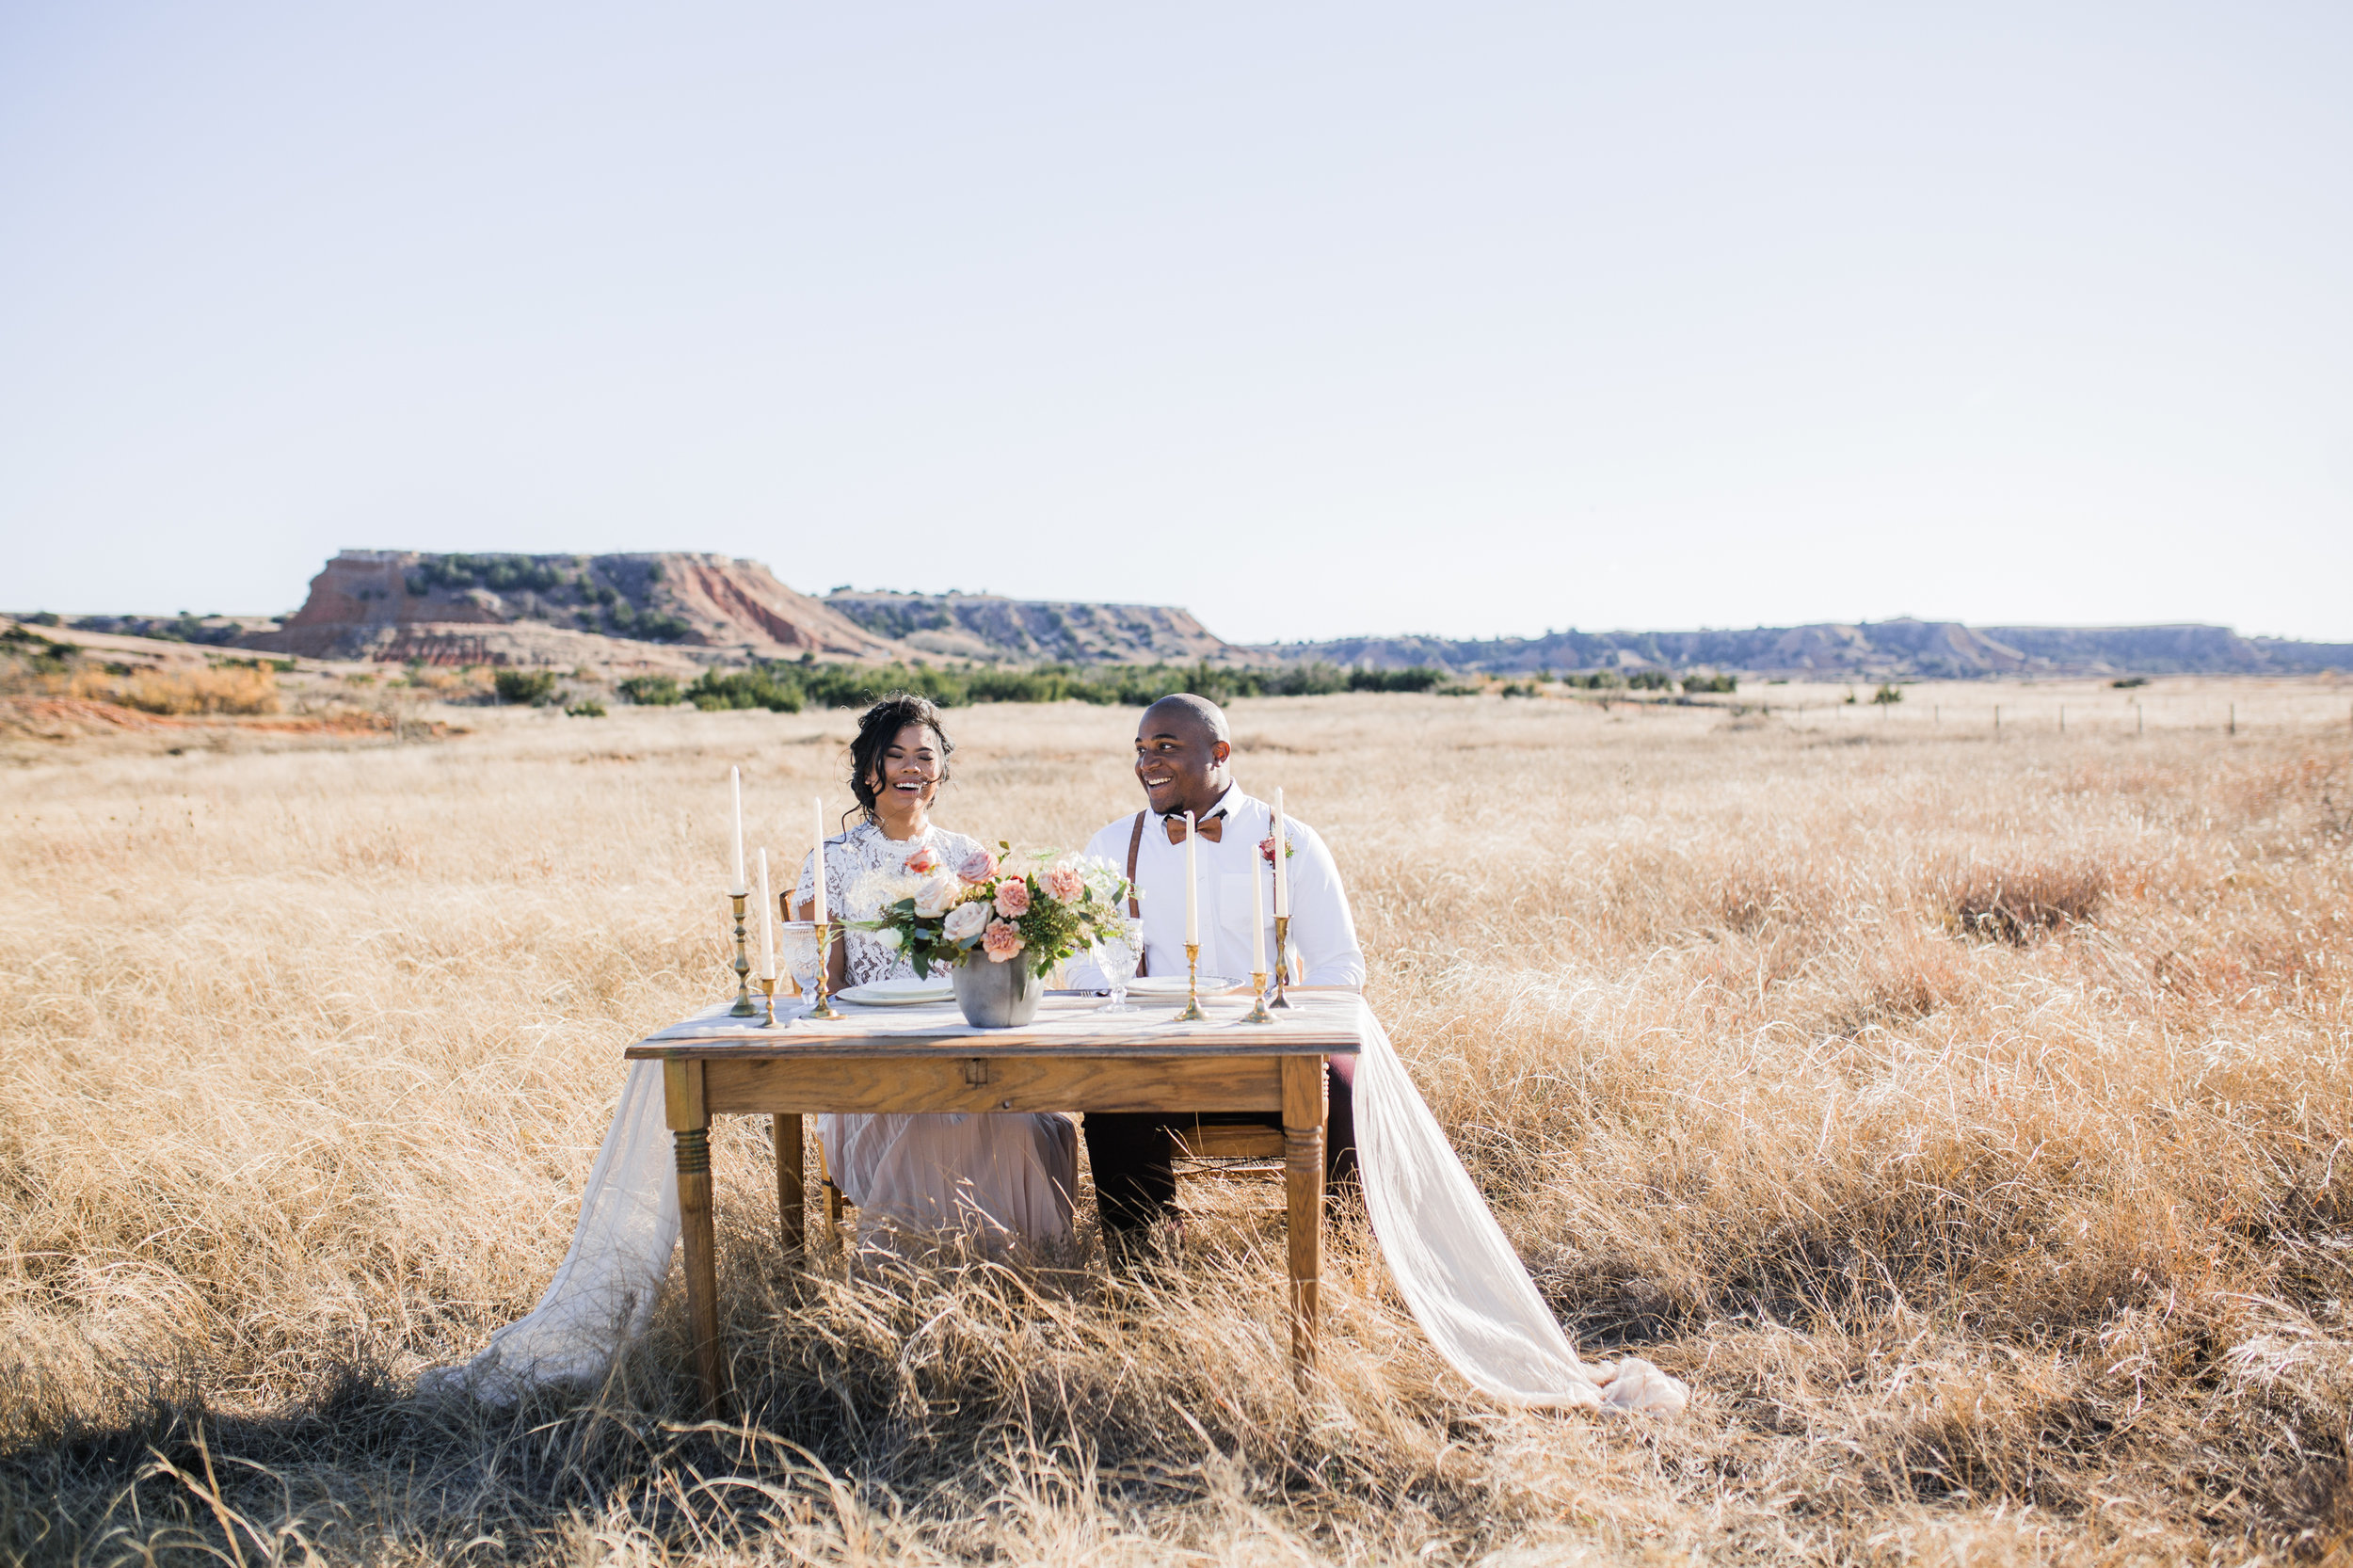 gloss-mountain-wedding-la-vintage-ok-rentals-05.jpg